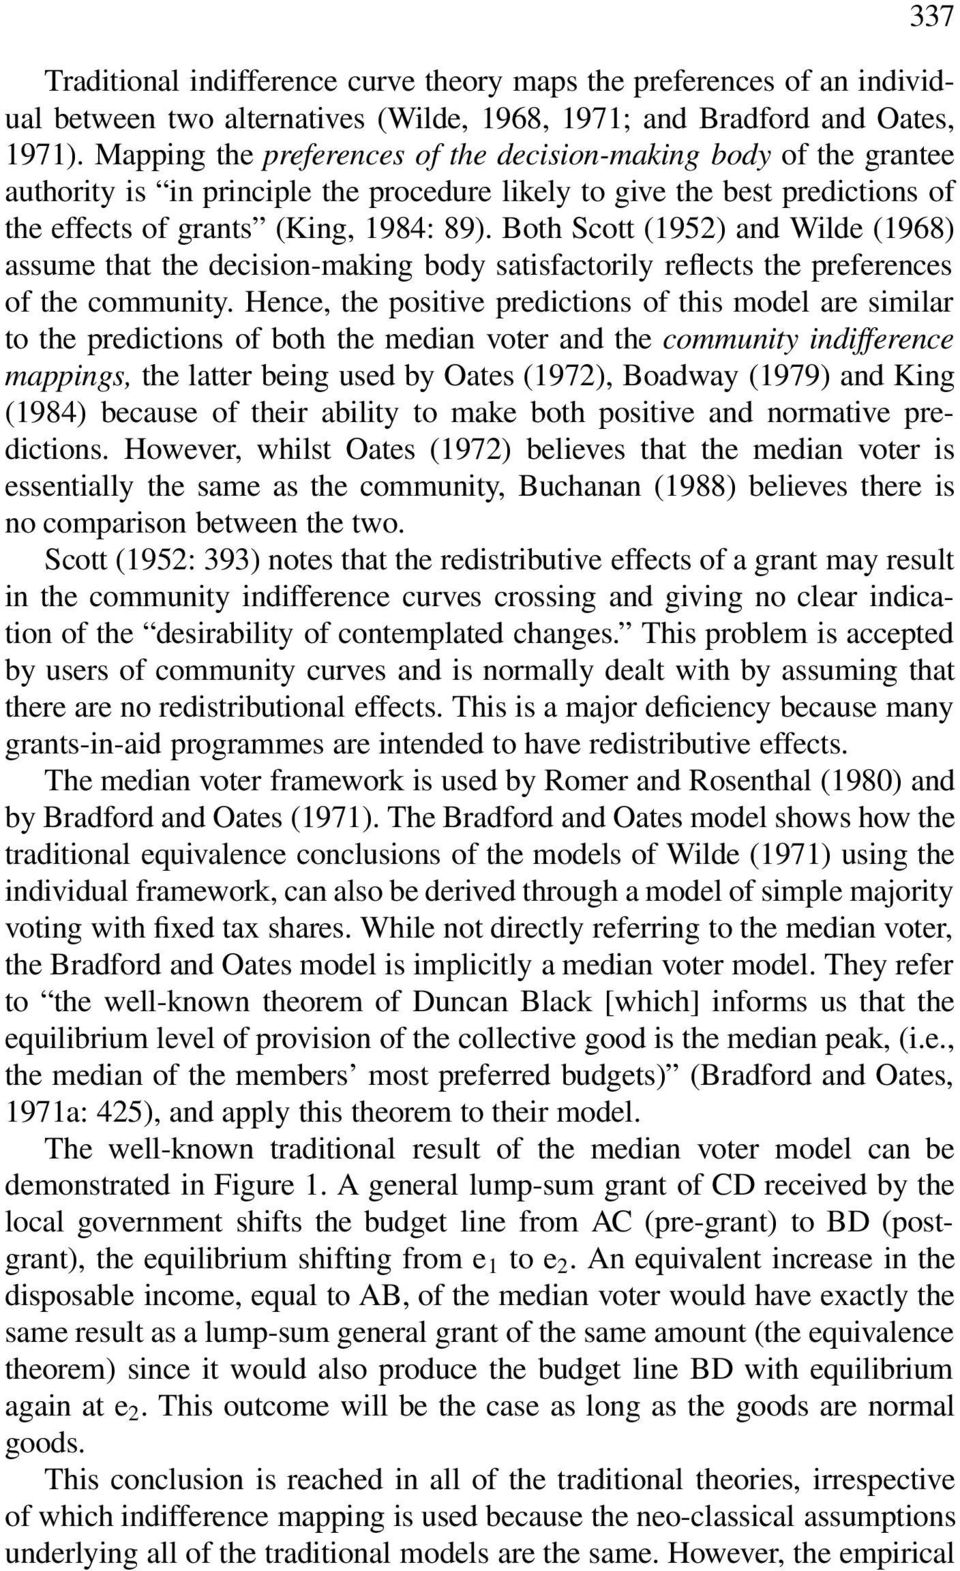 Both Scott (1952) and Wilde (1968) assume that the decision-making body satisfactorily reflects the preferences of the community.